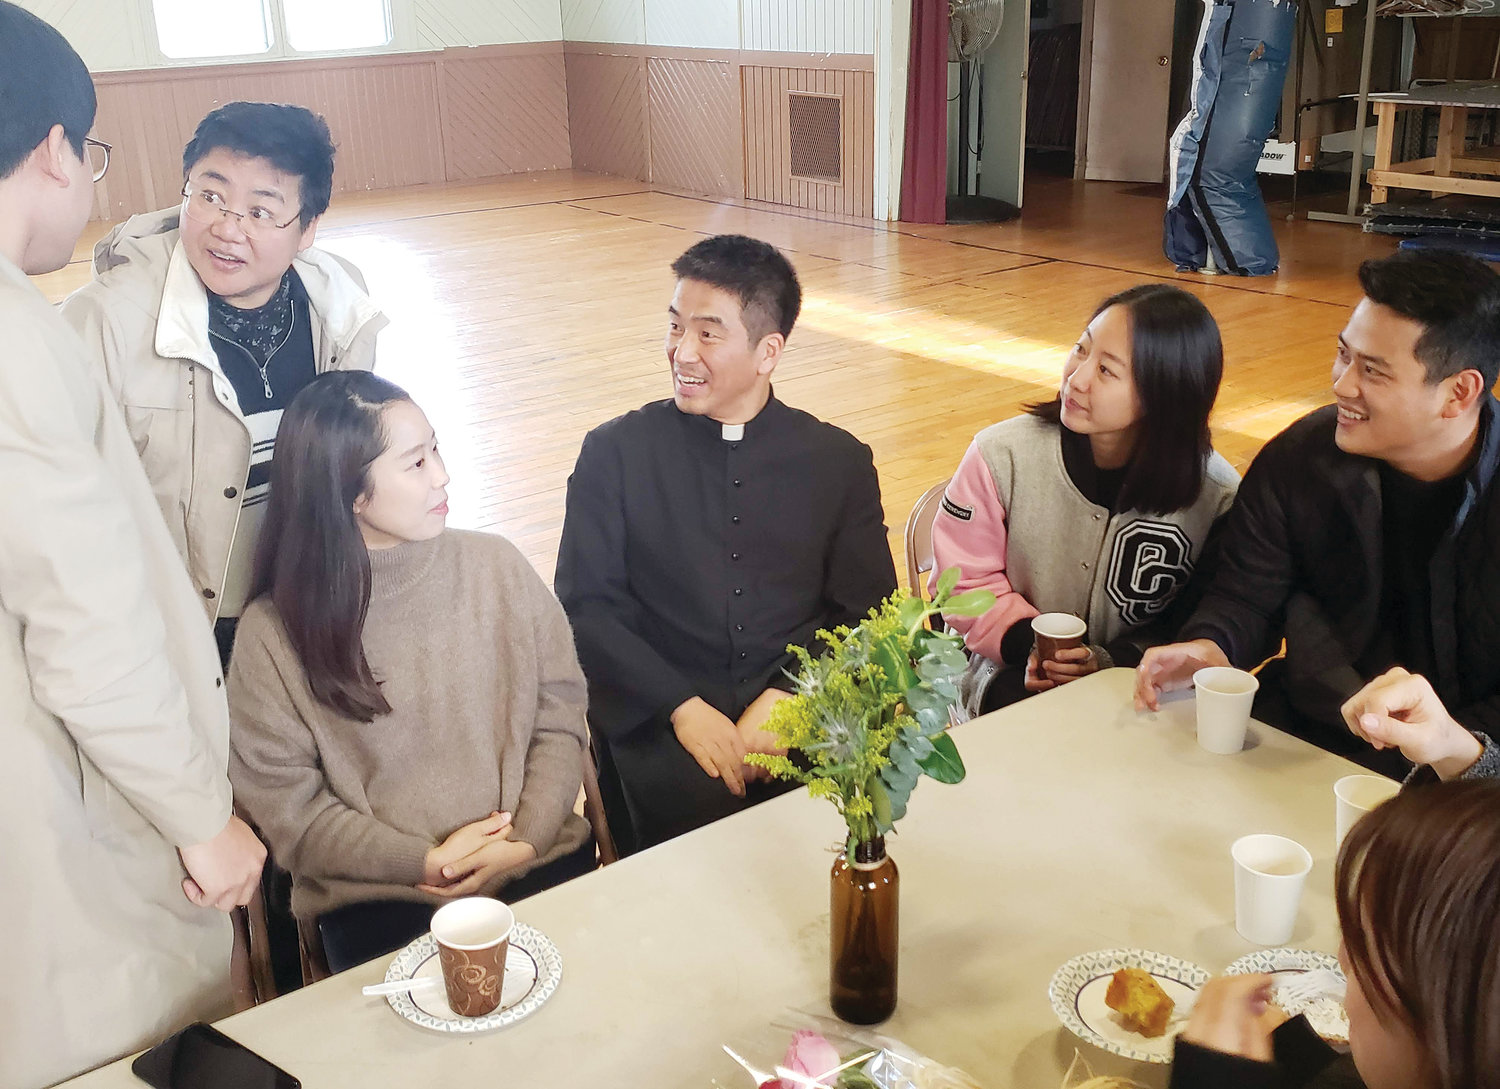 Father Jaekyu Lee, Chaplain to Rhode Island's Catholic Korean community and assistant pastor at St. Paul Church in Cranston, visits with Korean faithful after Mass.